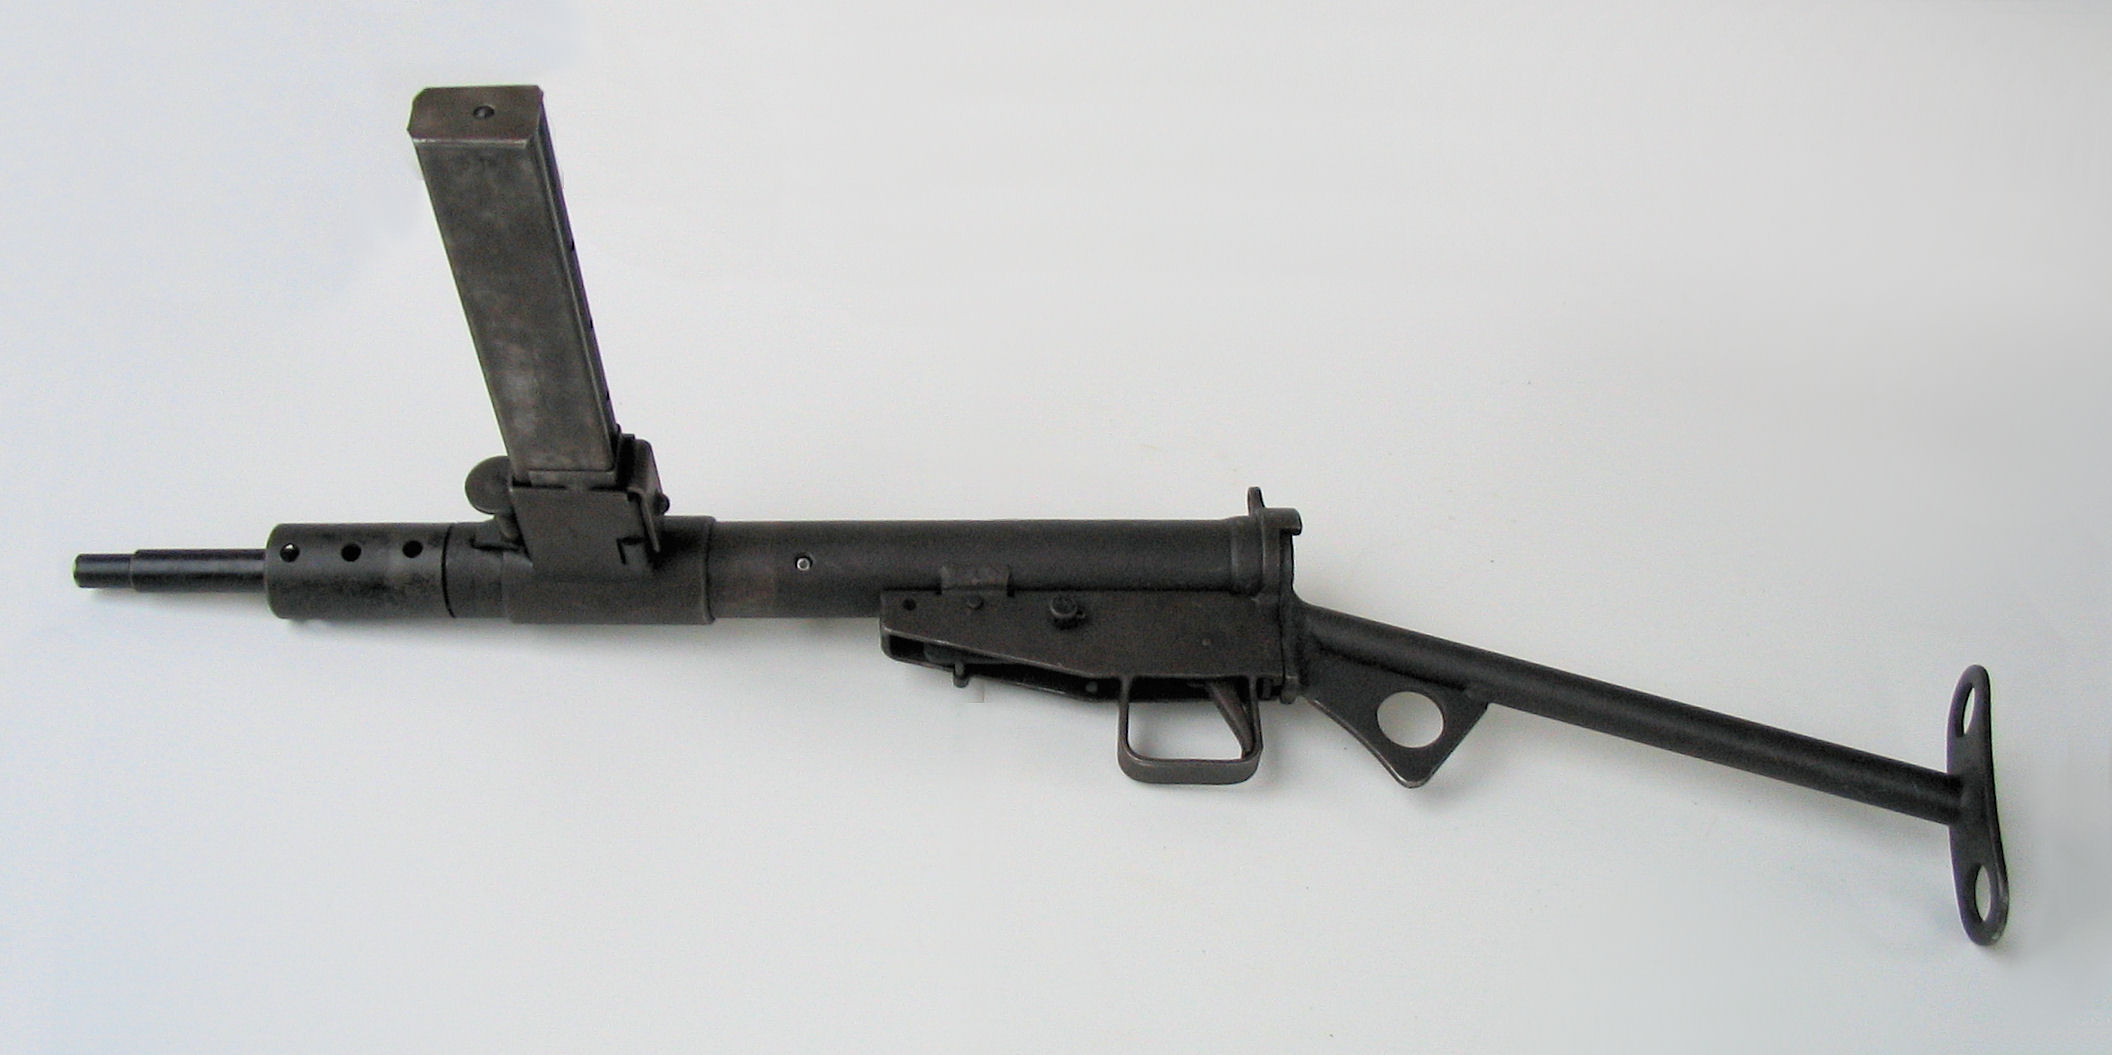 Sten Wikipedia Xrep A Combination Of Taser And Shotgun